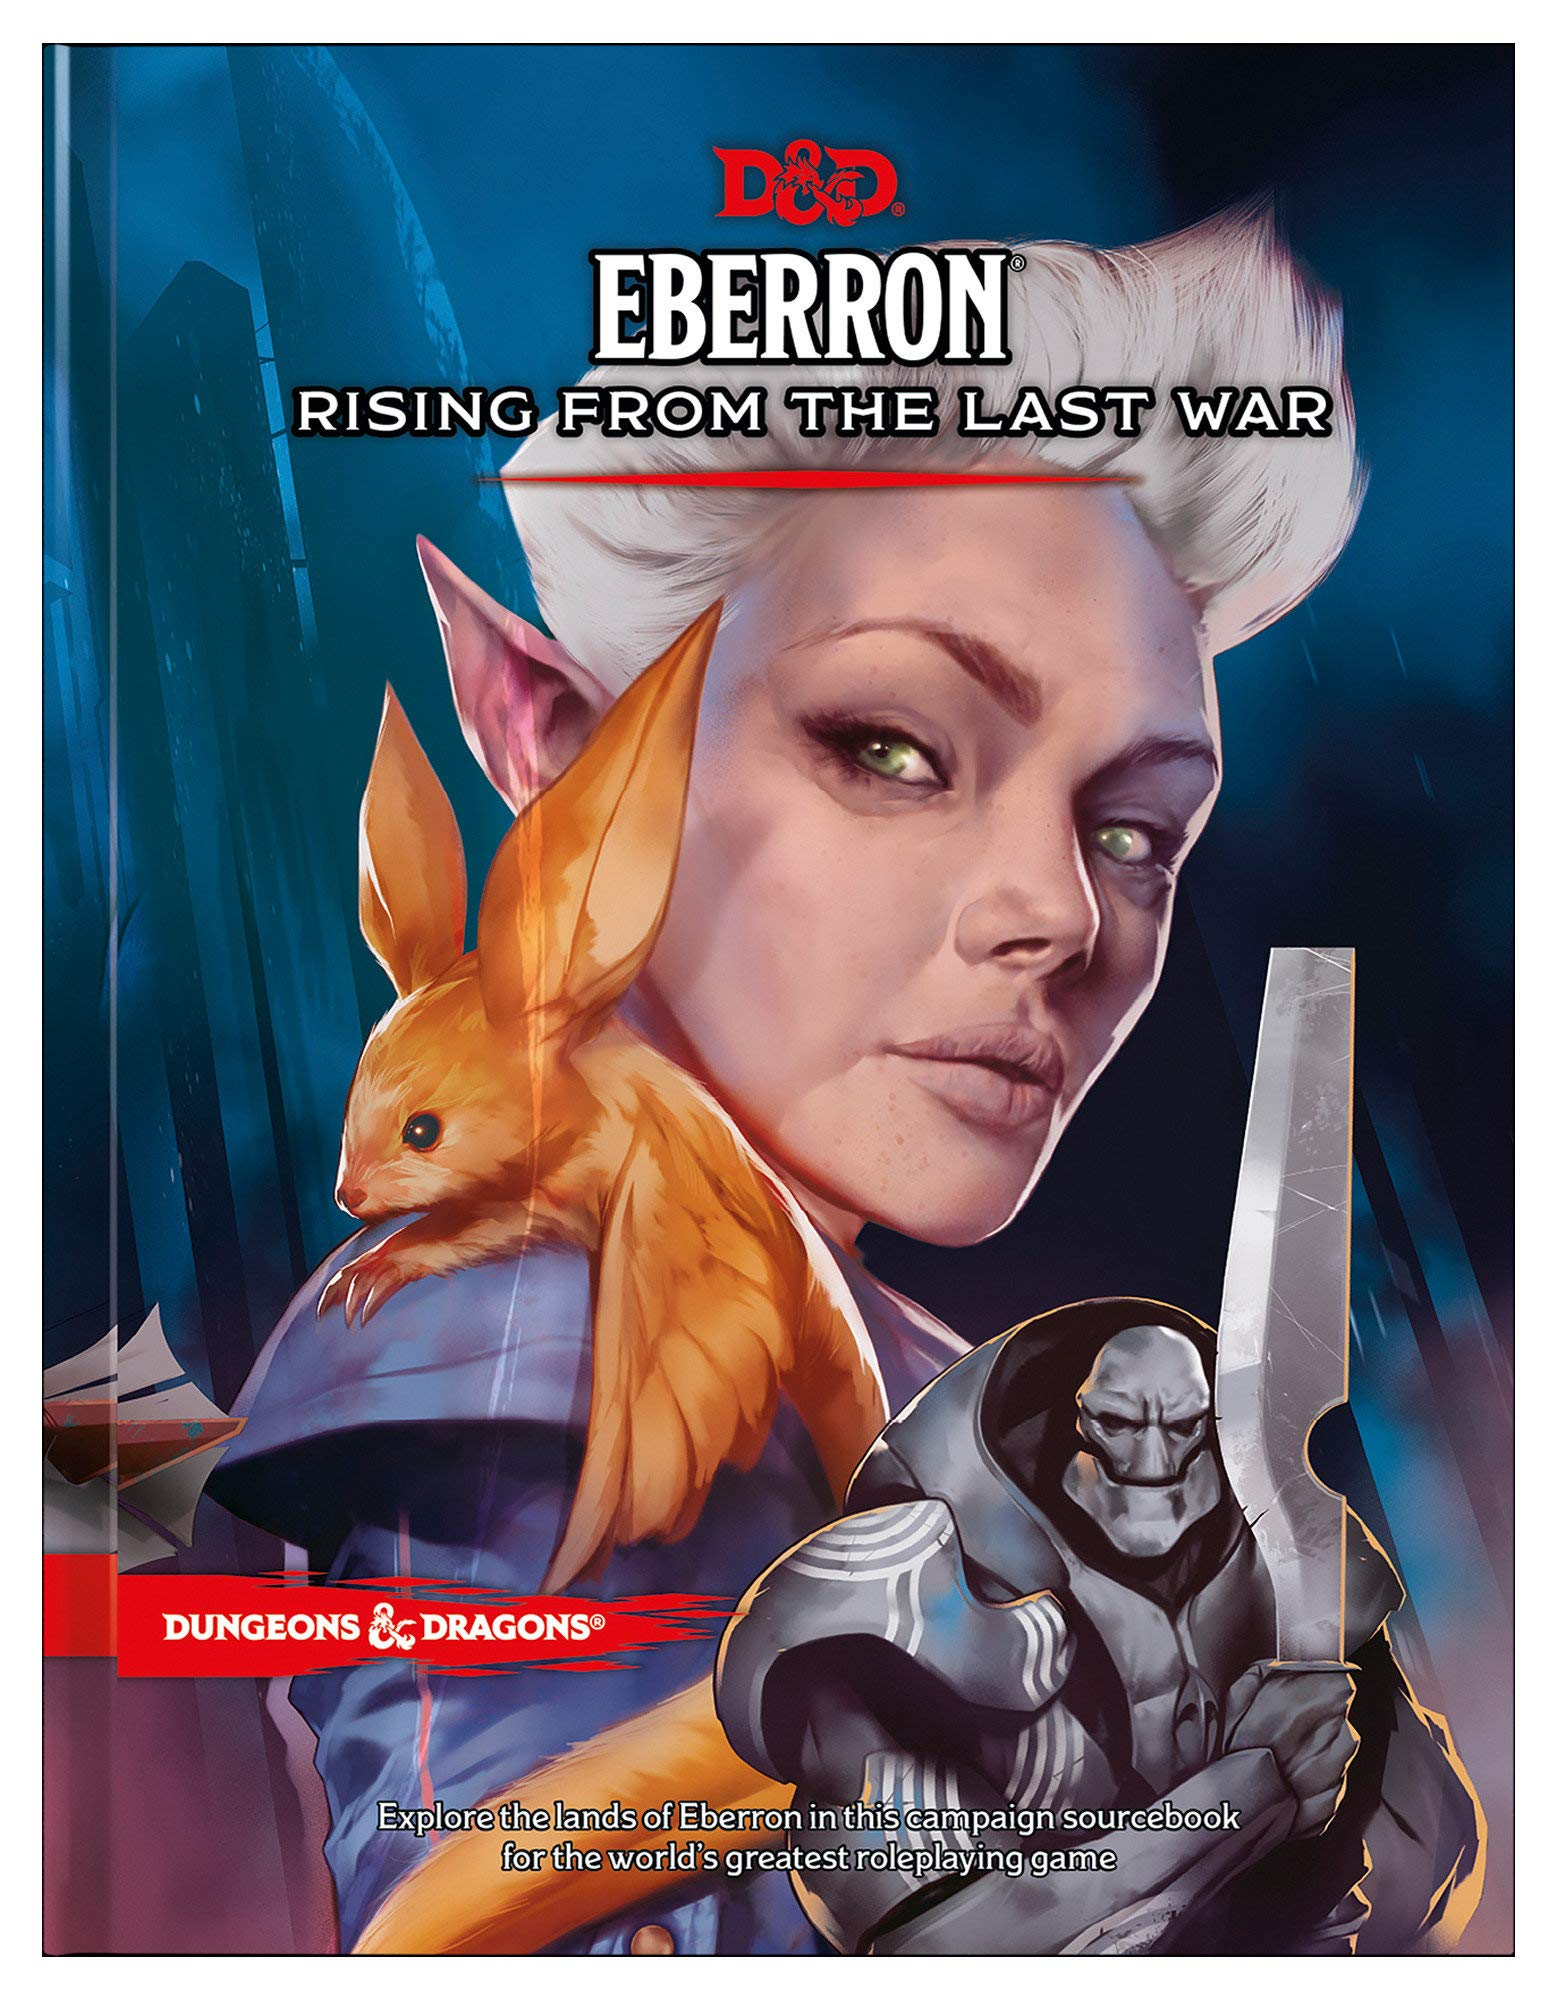 Cover art for Eberron: Rising from the Last War featuring a woman with a bat on her shoulder.